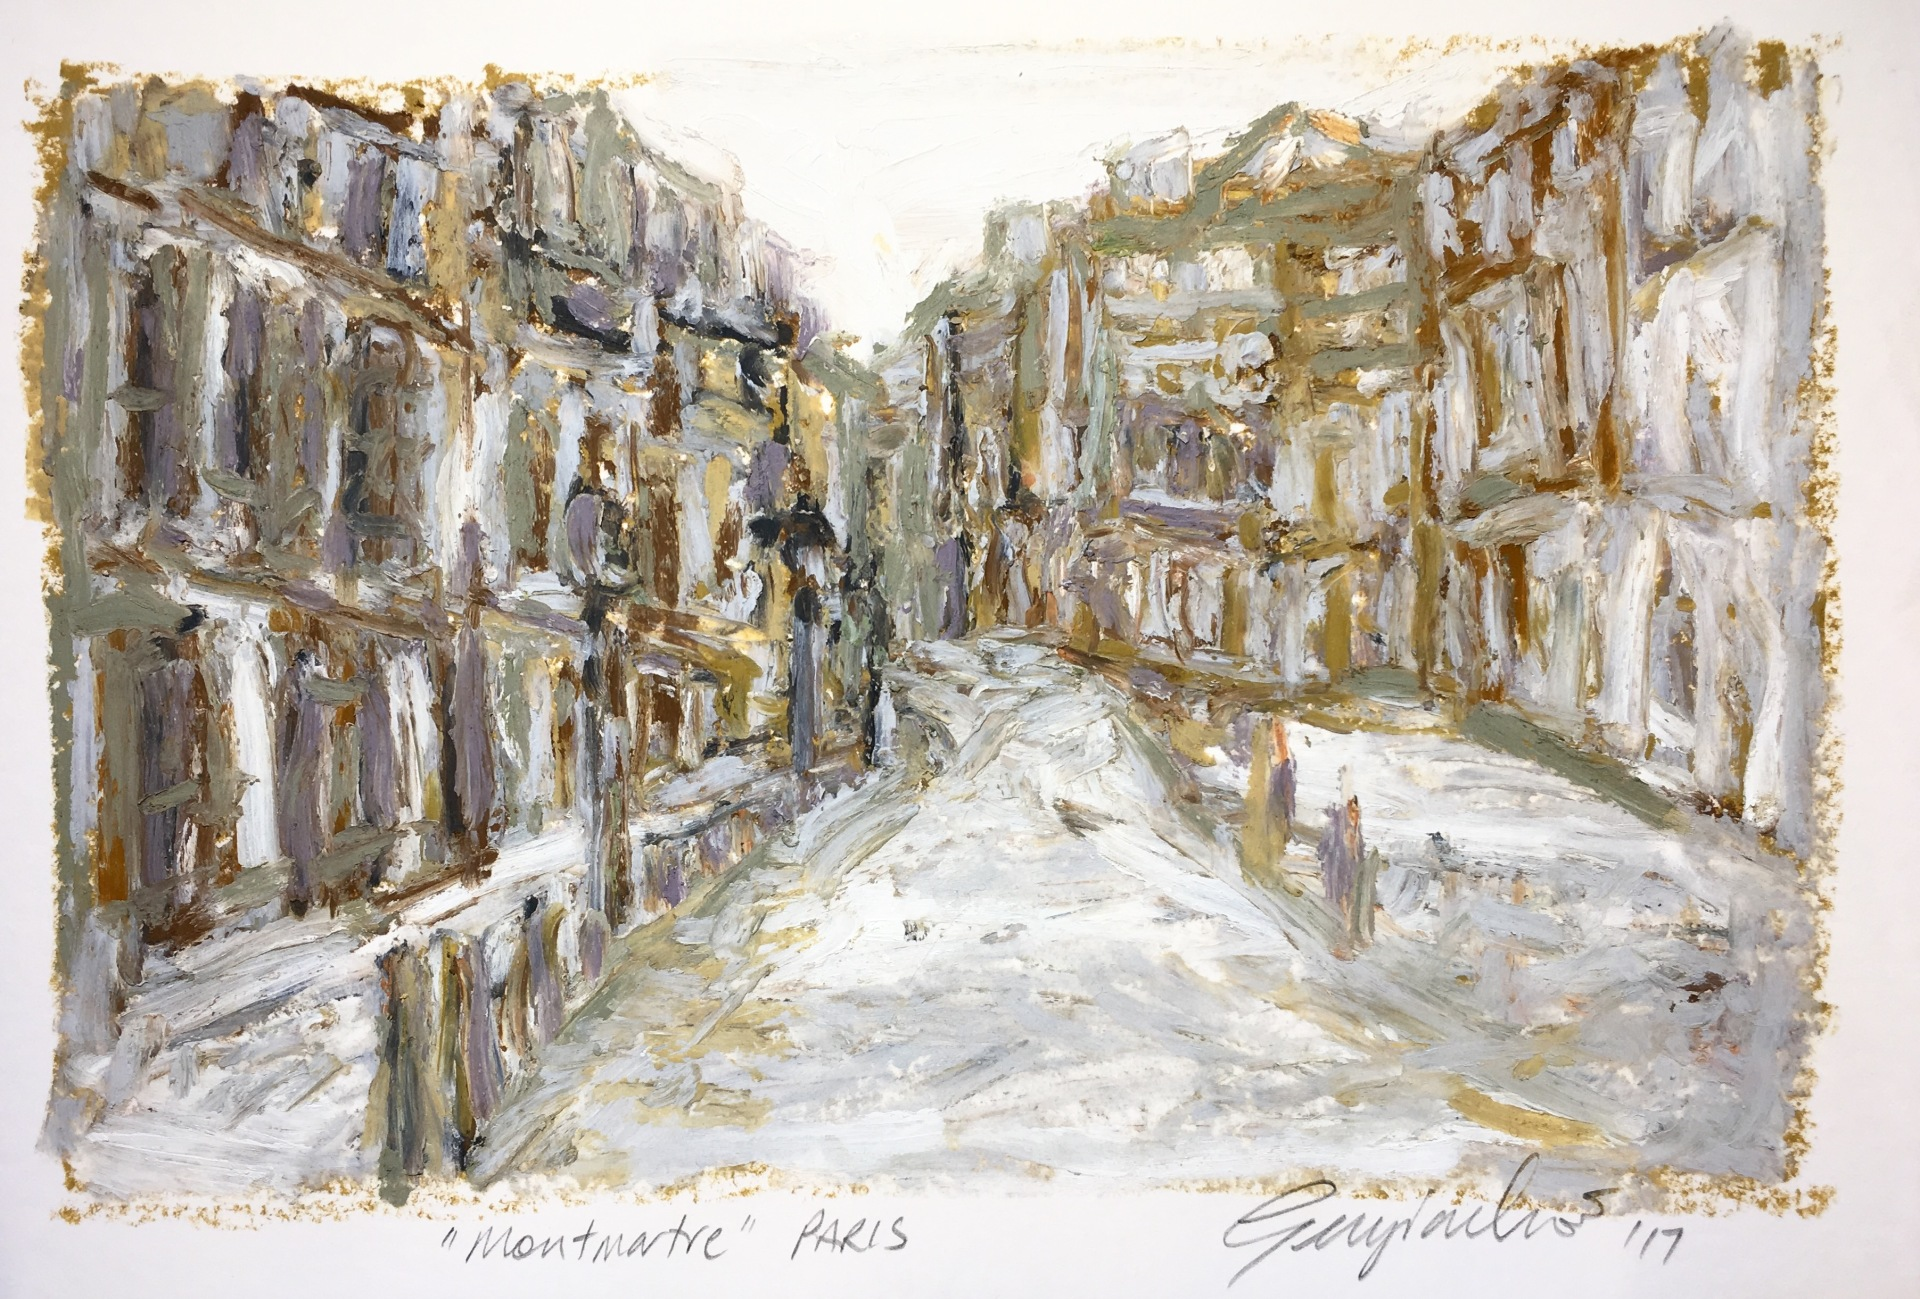 Montmartre Paris (SOLD)